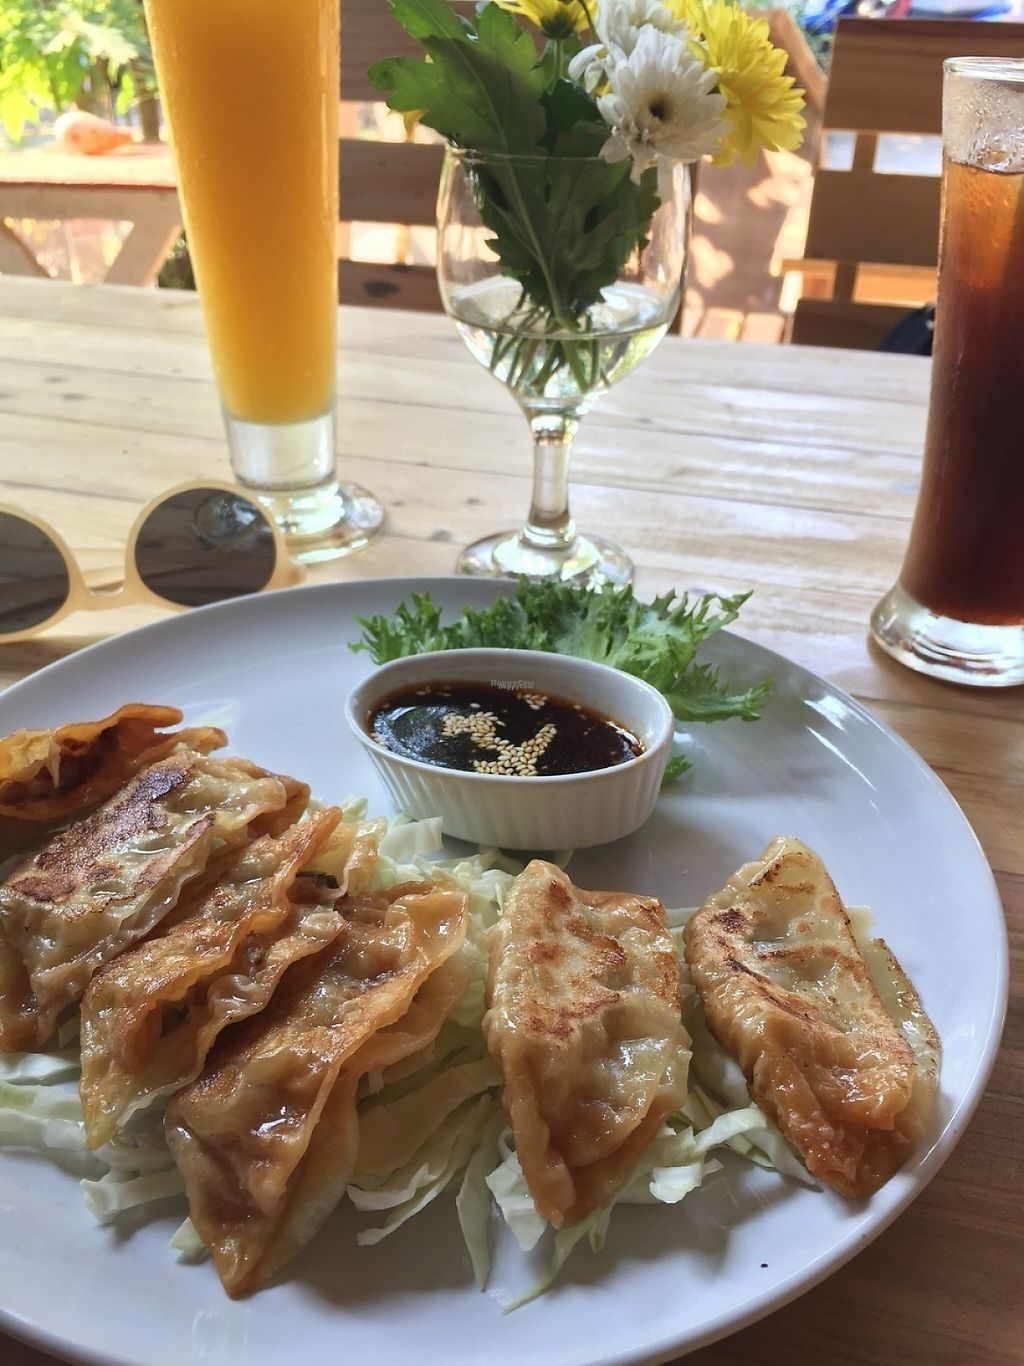 "Photo of Tofu  by <a href=""/members/profile/JuliaAnna"">JuliaAnna</a> <br/>Gyoza- so tasty! <br/> March 5, 2017  - <a href='/contact/abuse/image/88087/232900'>Report</a>"